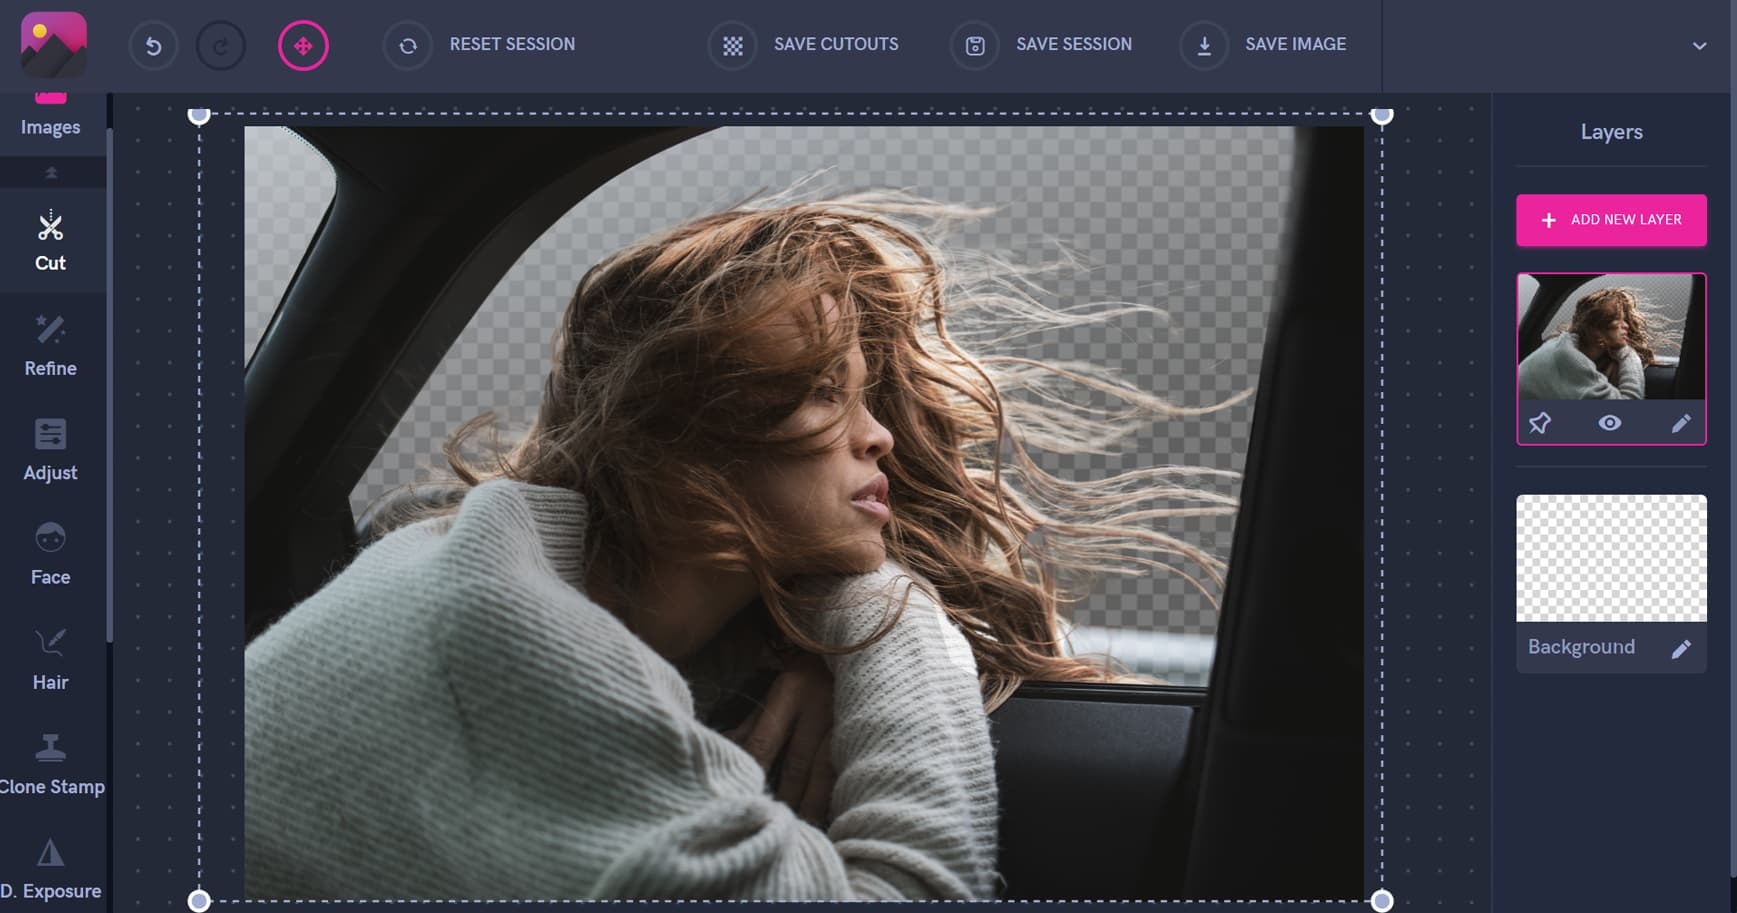 girl looking out of a car window, woman with hair blowing in the wind, cut out hair from images, pixomatic screenshot, tutorial